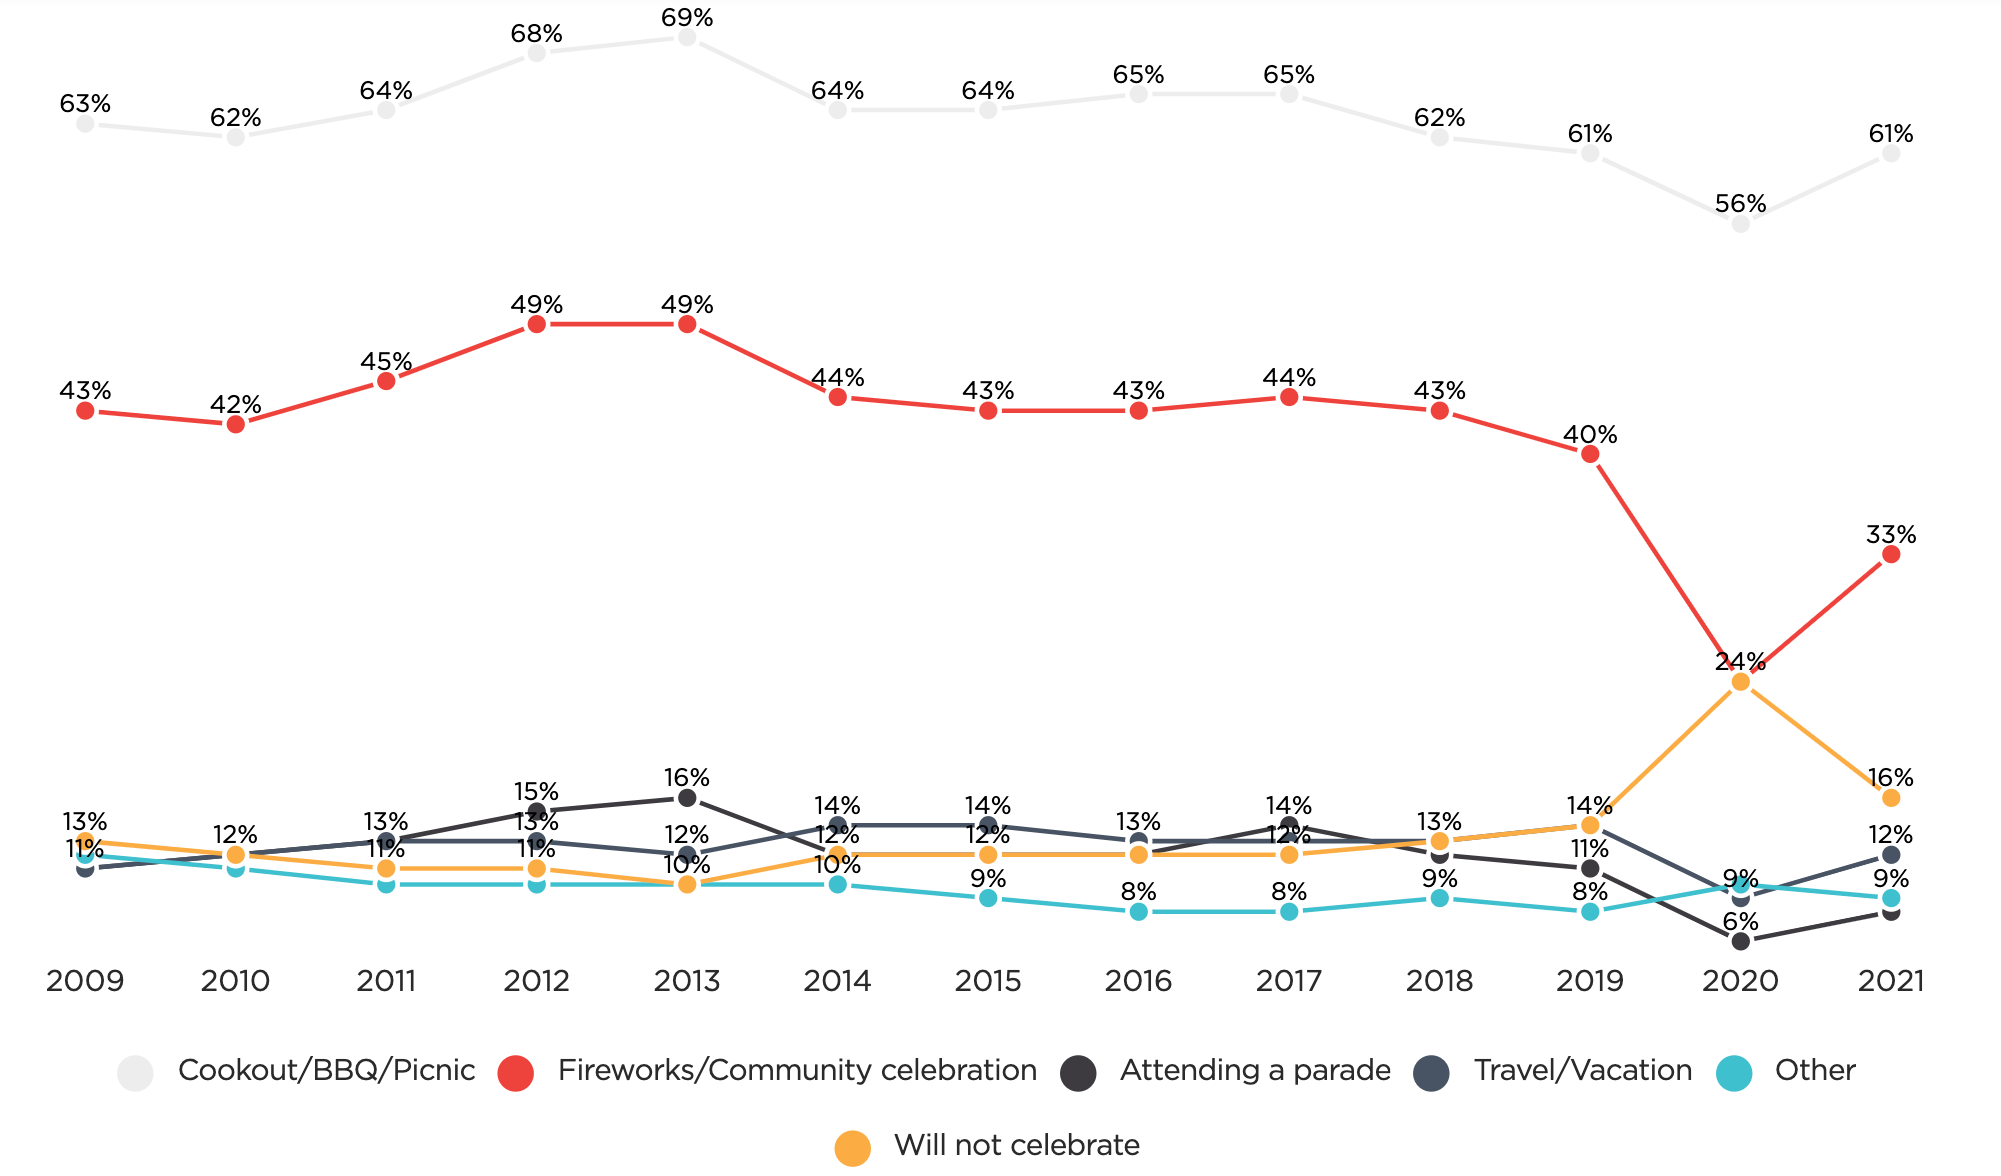 activities on july 4th with an increase in participants in 2021 customer insights